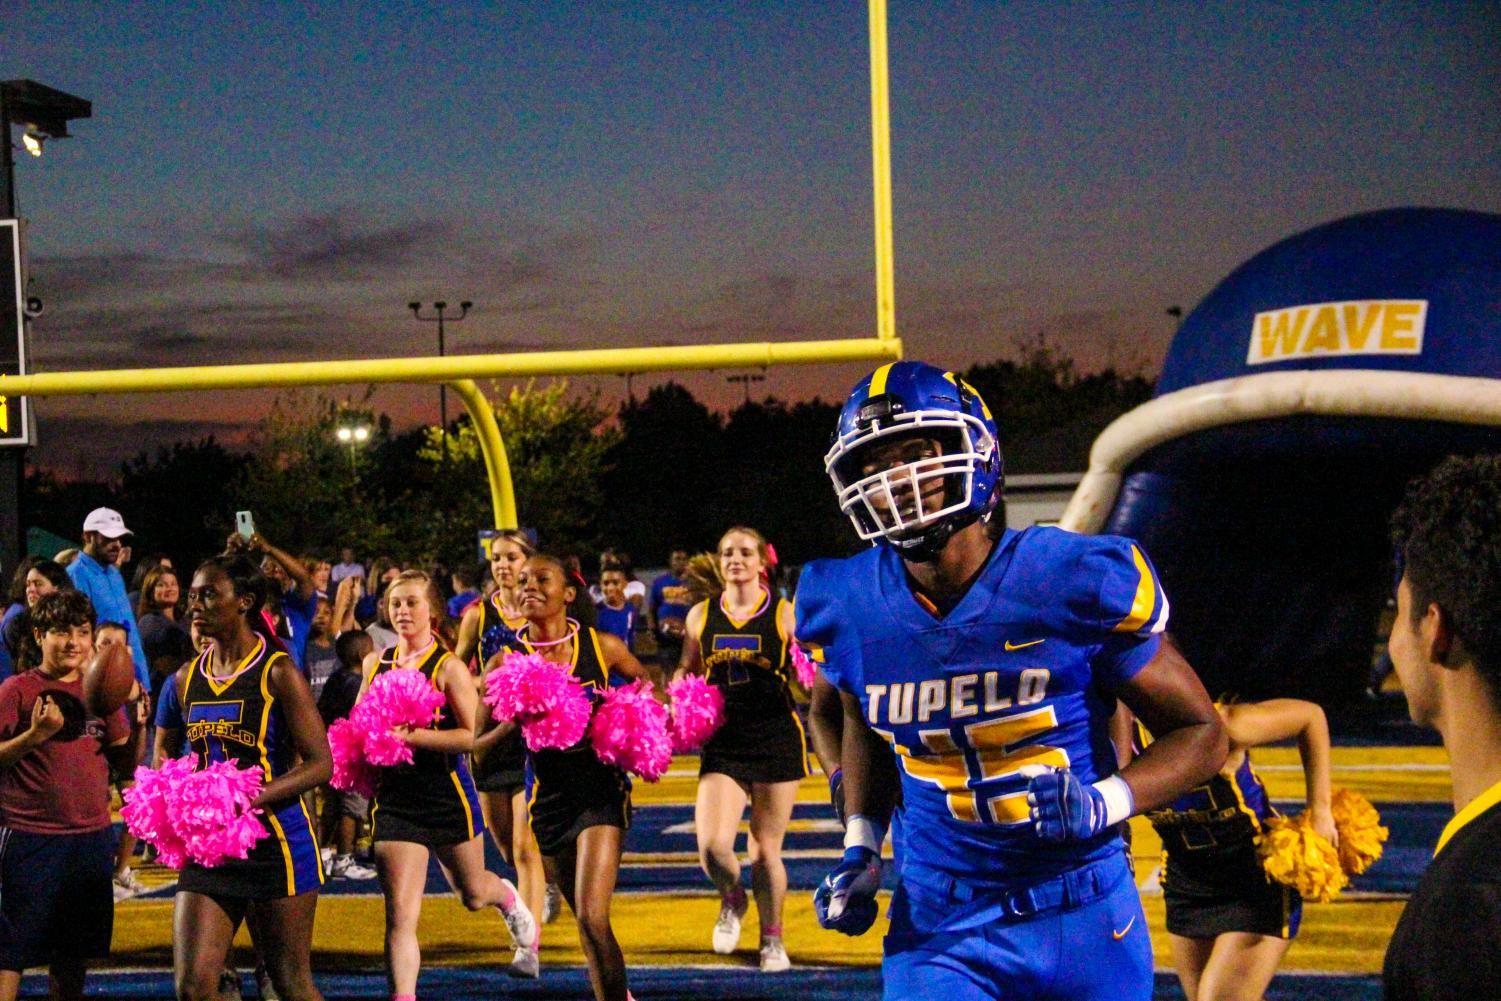 Quay Edwards runs onto the field before the varsity game v. Olive Branch on Oct. 4.